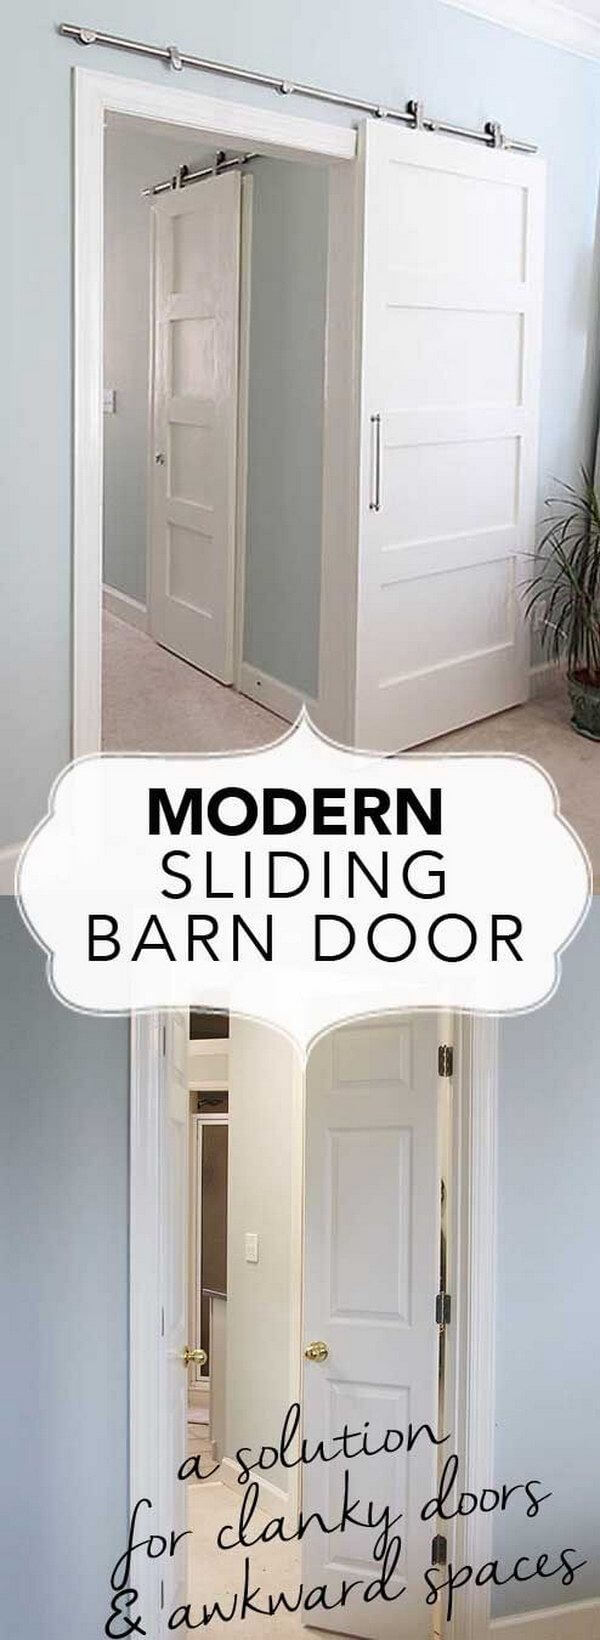 Get the Barn Door Look for Less